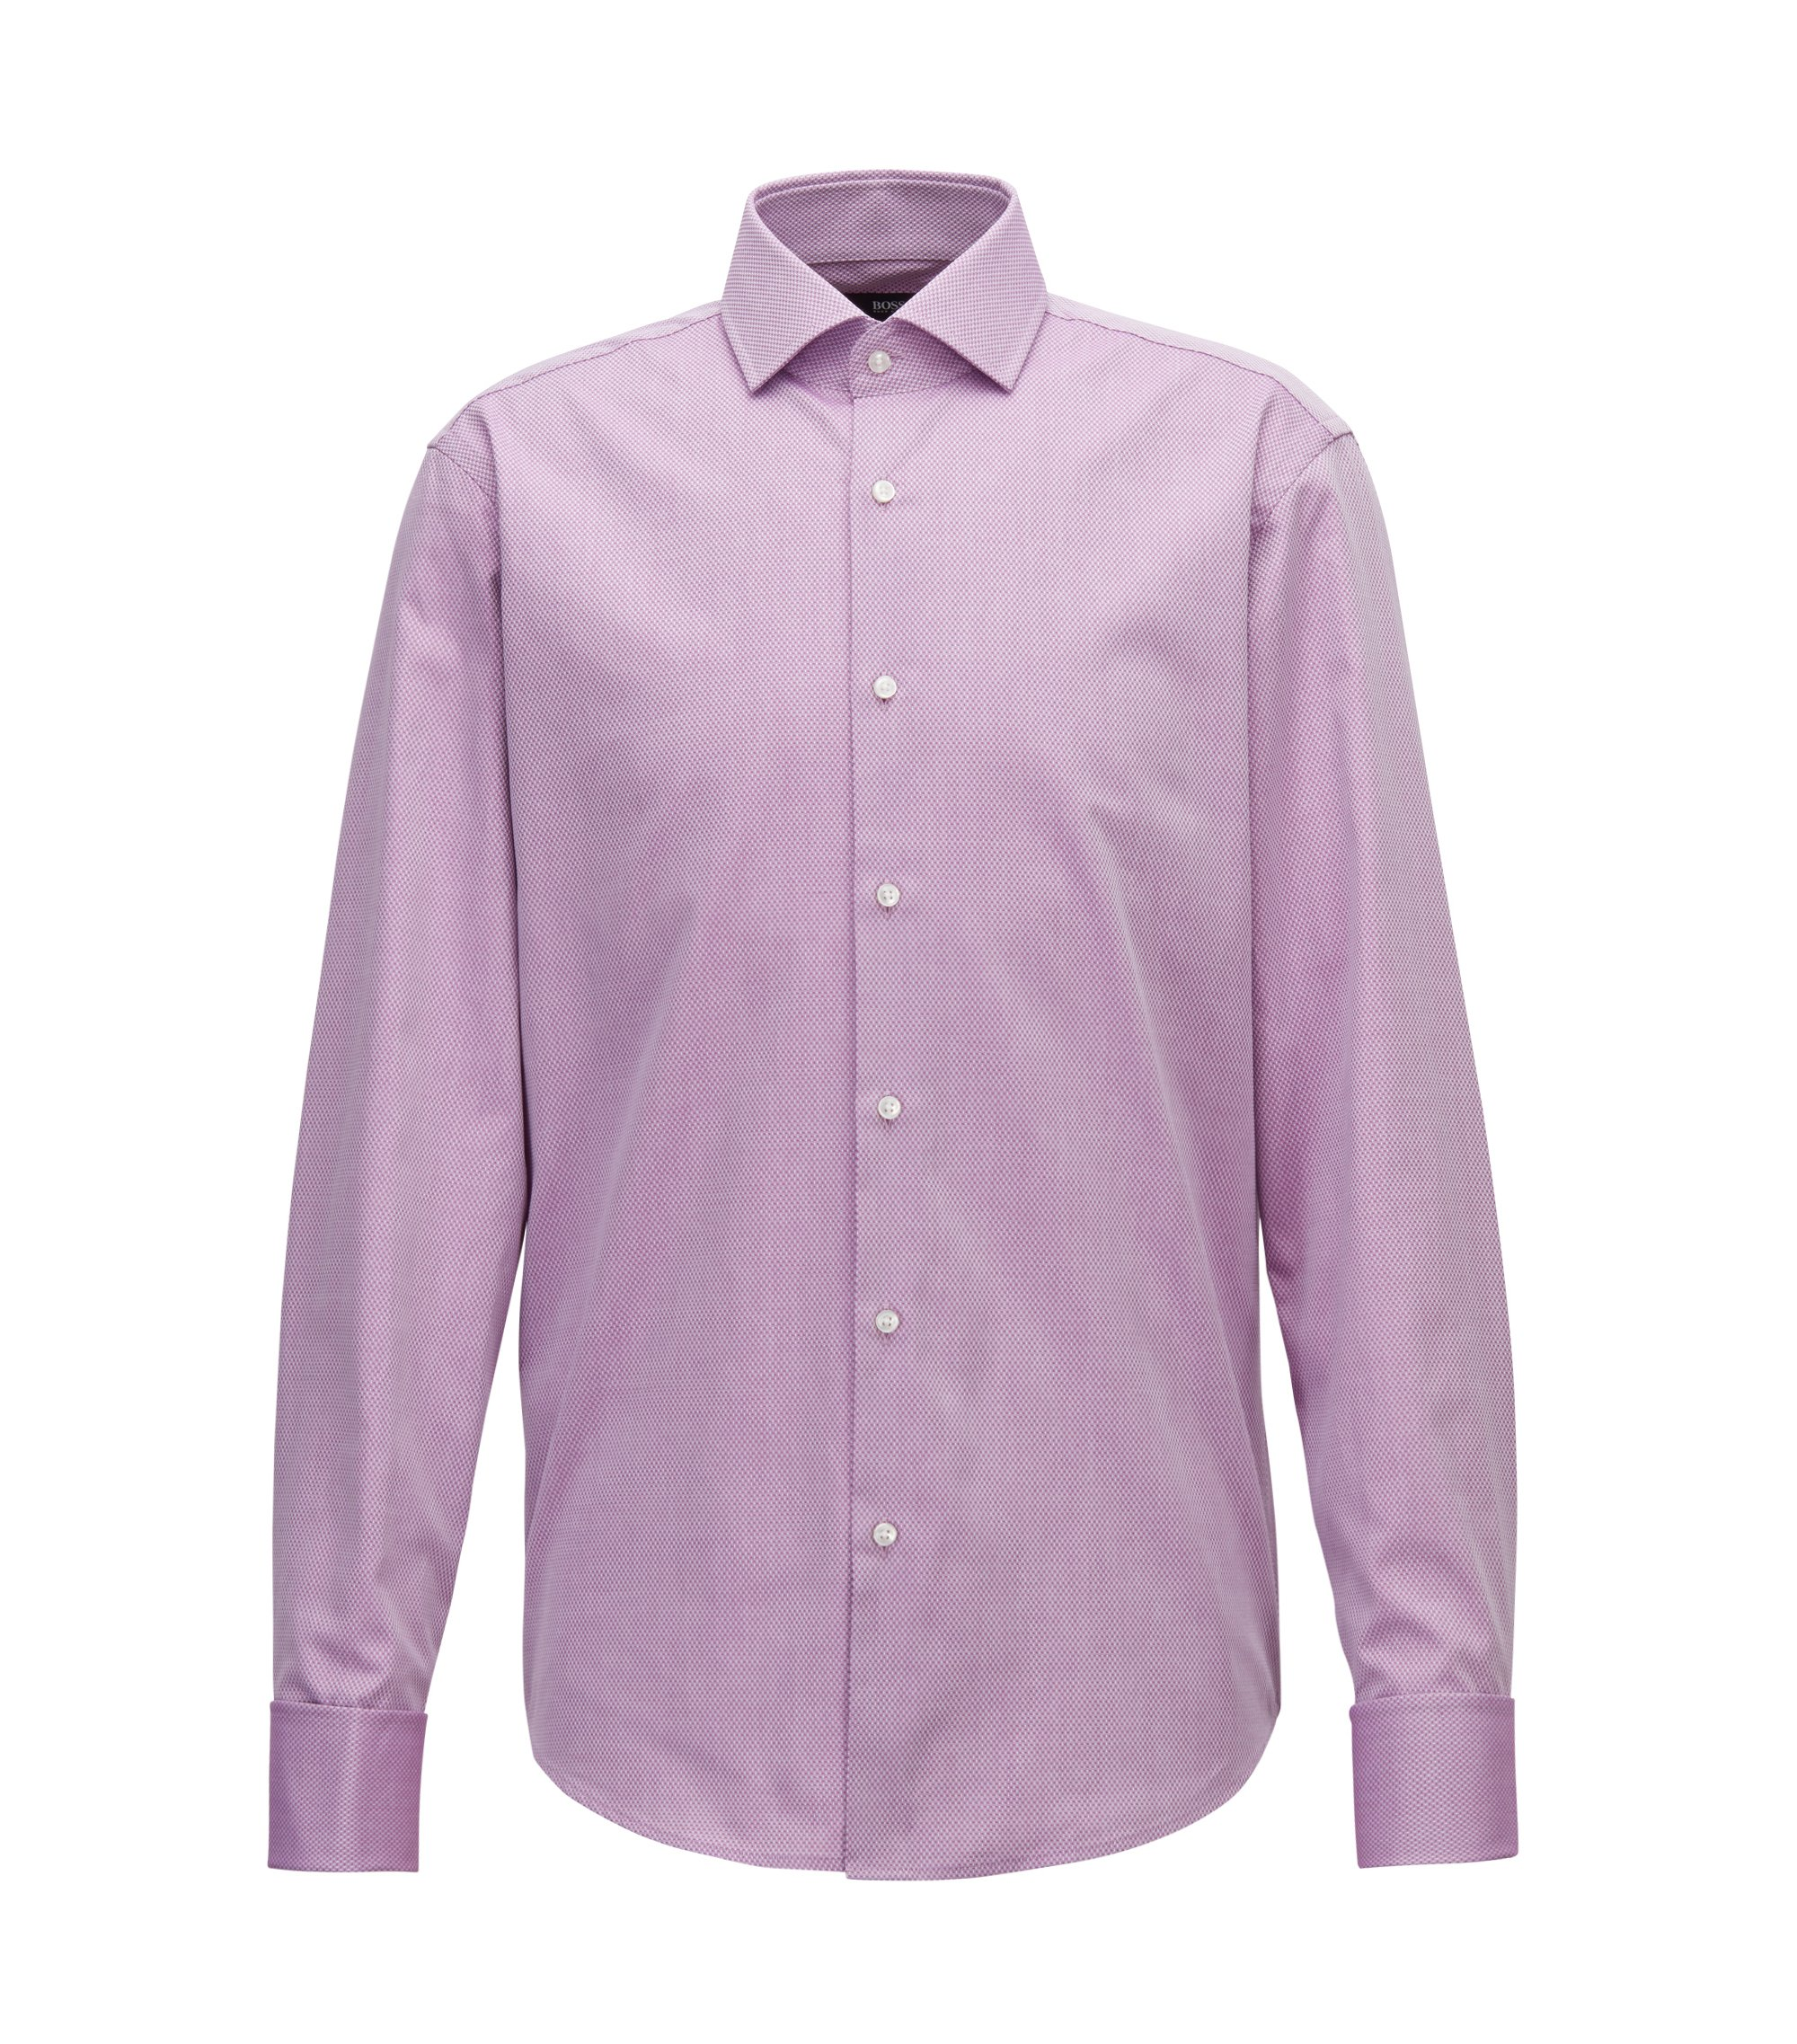 Camicia regular fit in cotone dobby con microdisegni, Rosa scuro